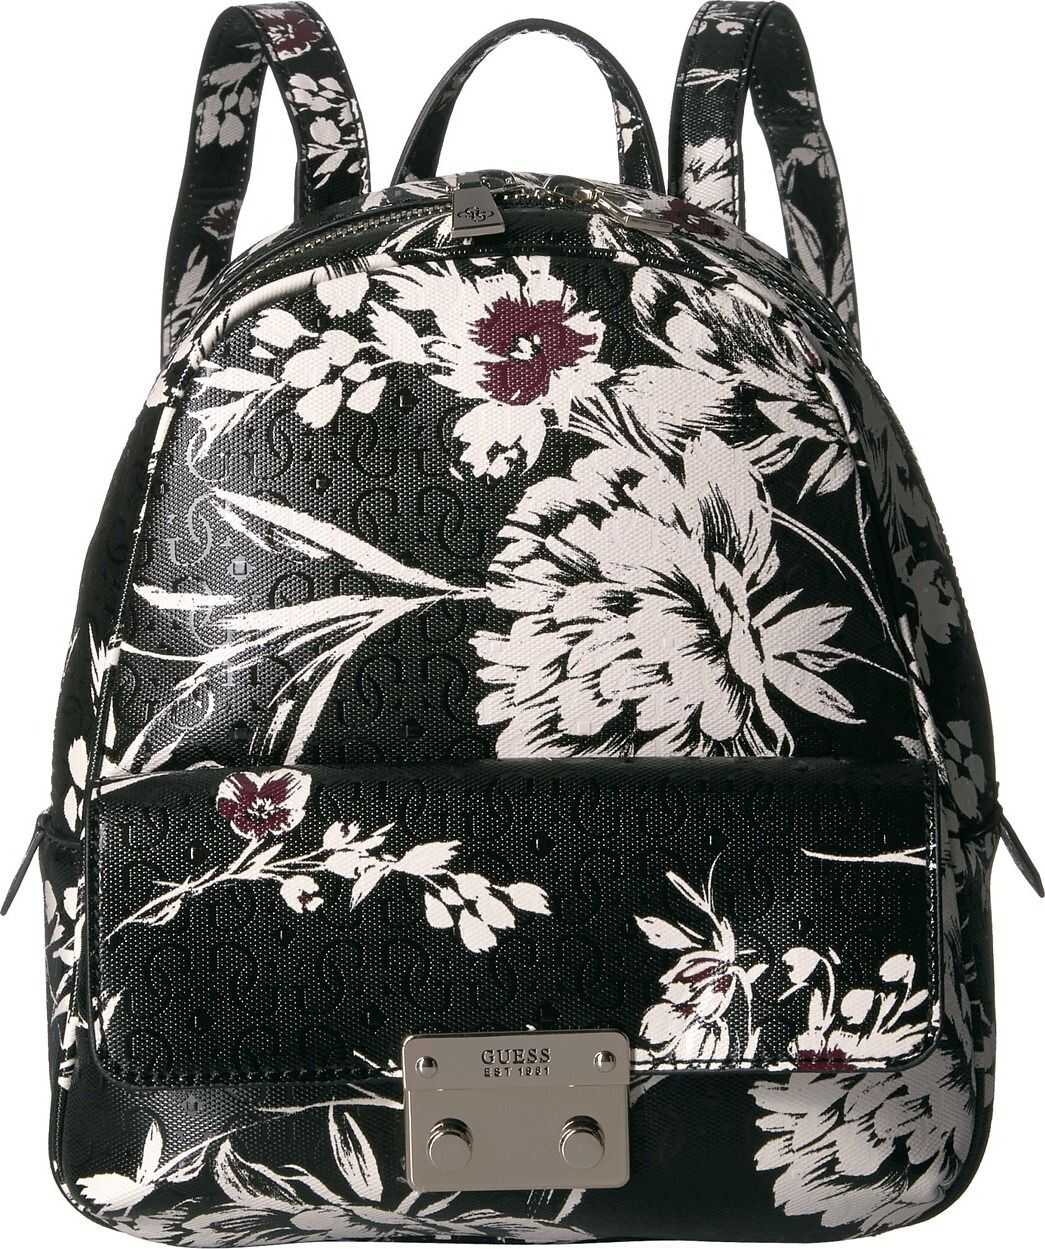 GUESS Tamra Small Backpack Black Floral